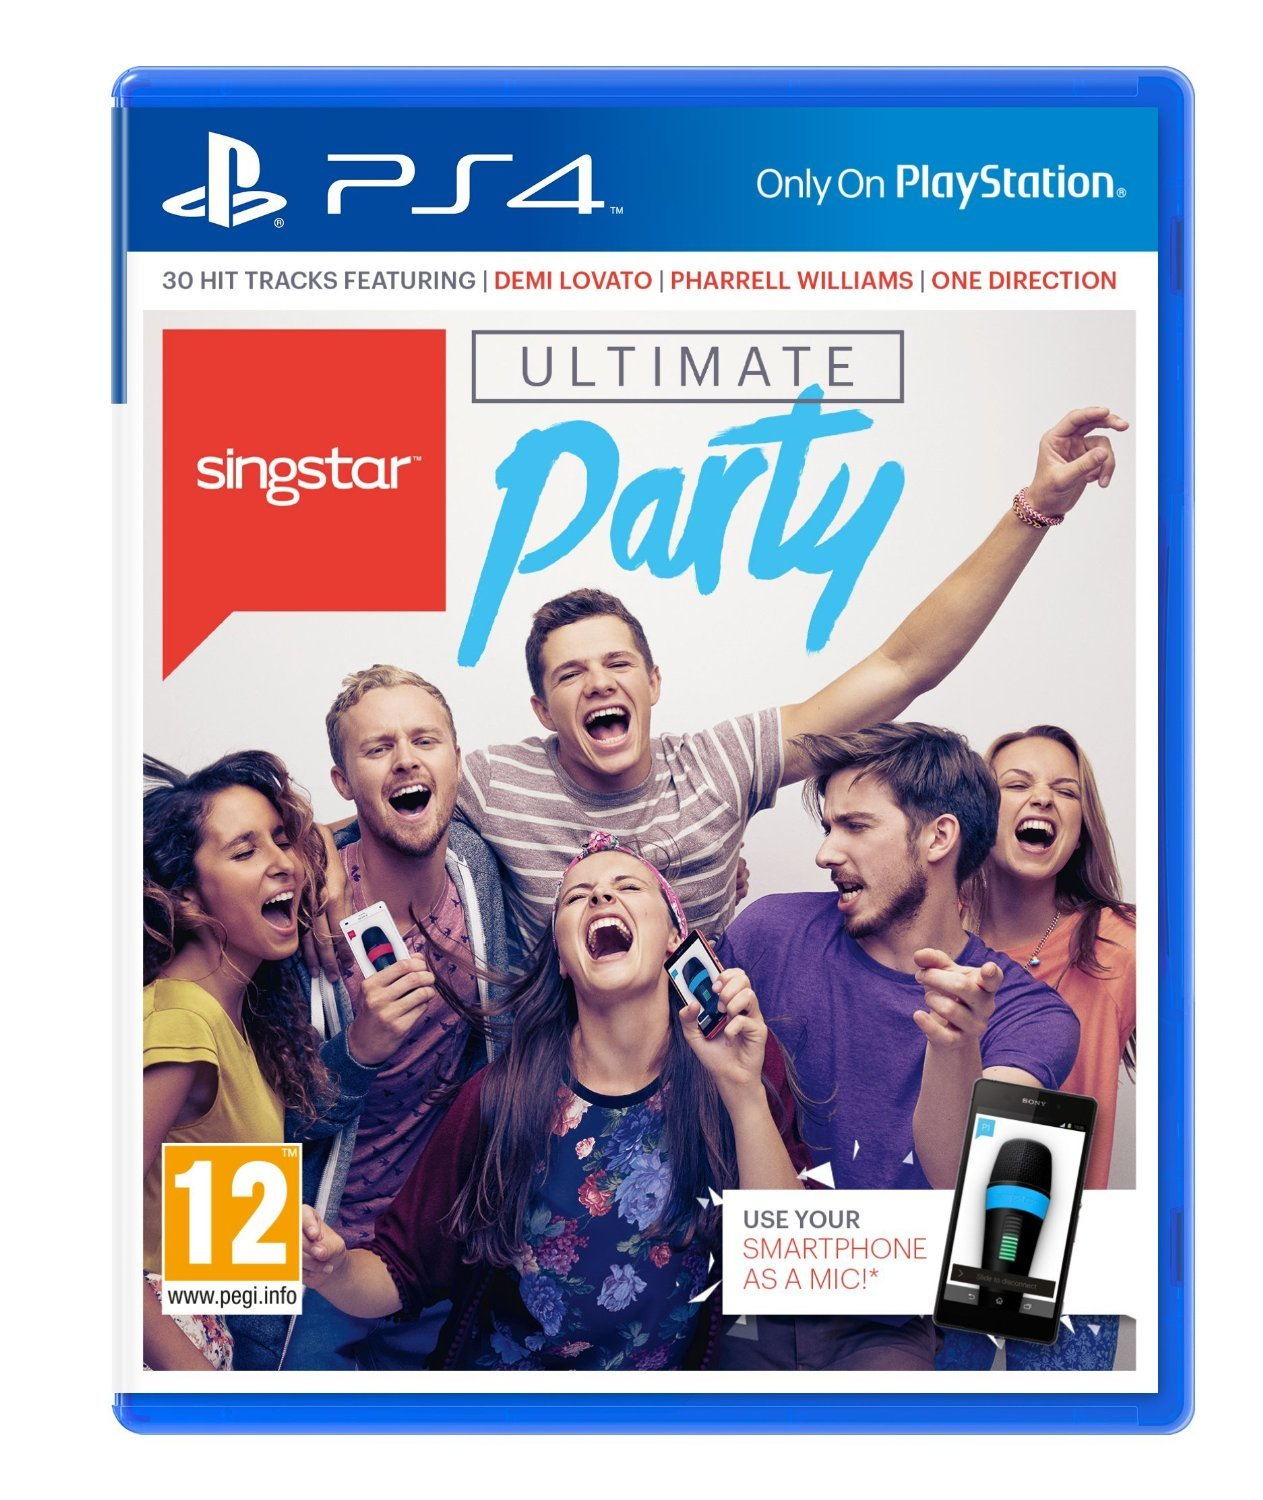 Singstar: Ultimate Party [PlayStation 4, PS4] by SingStar: Amazon ...